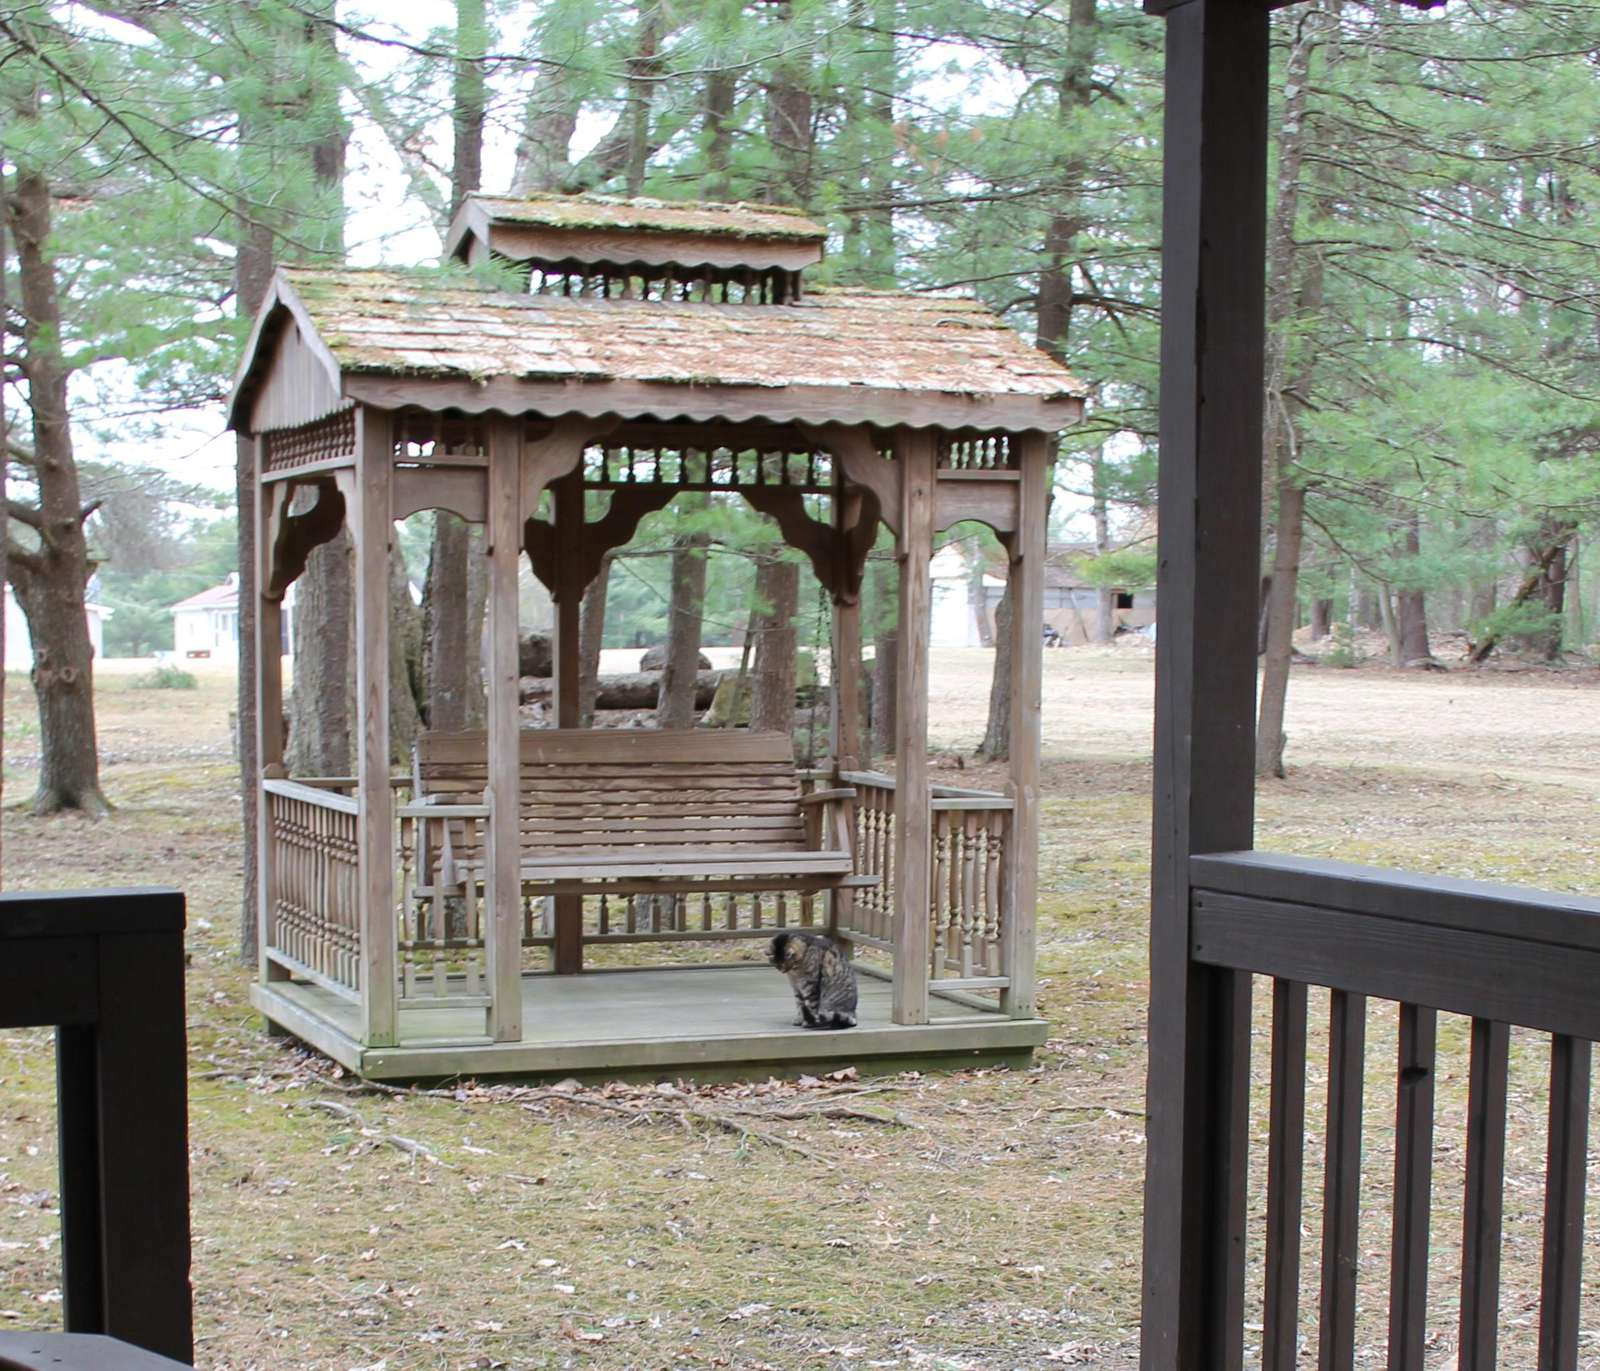 Gazebo at Blue Spruce